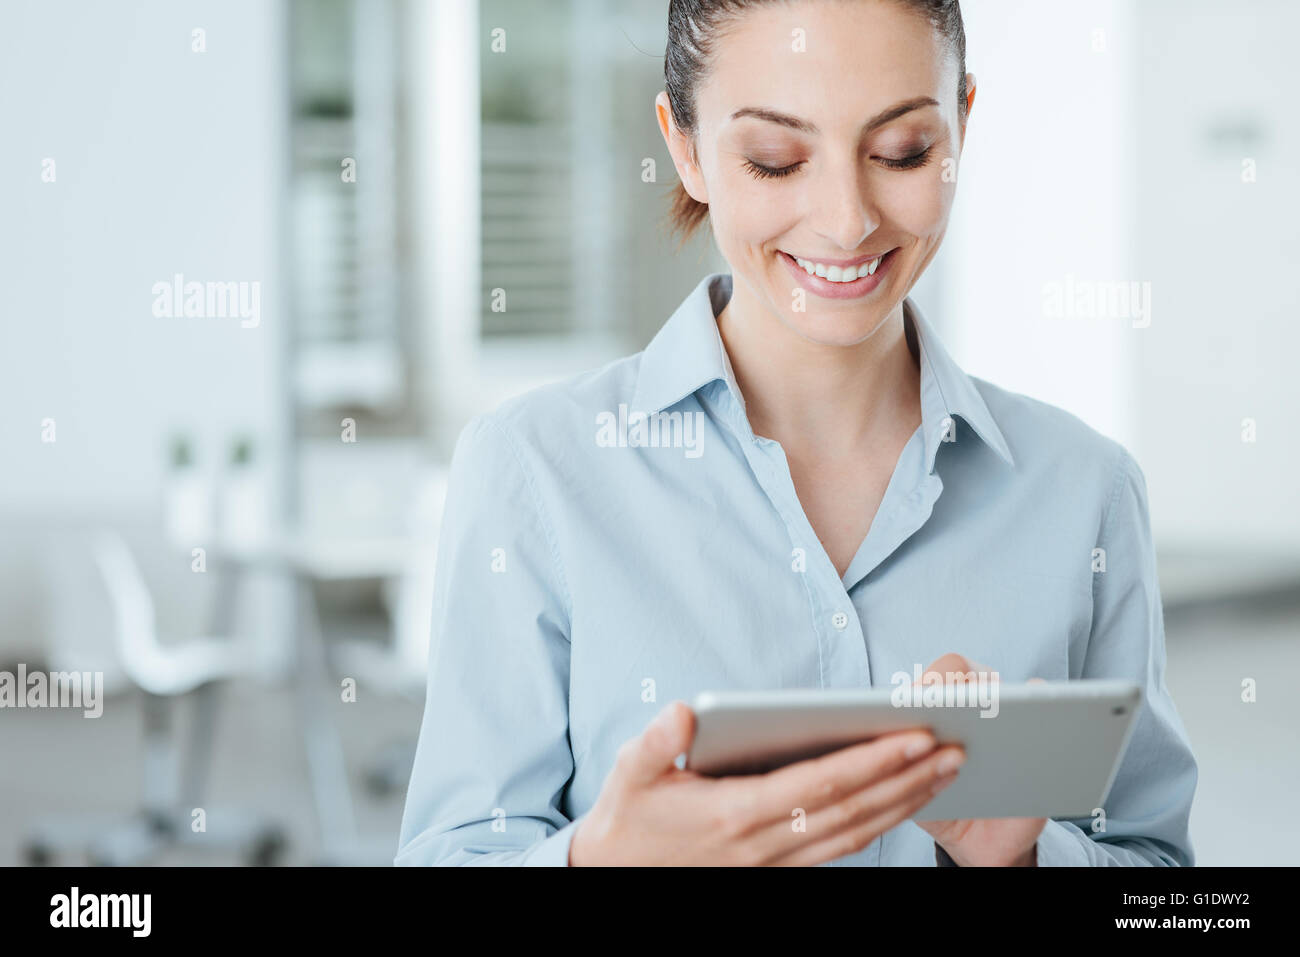 Young smiling business woman using a digital touch screen tablet and using apps, she is standing in the office - Stock Image